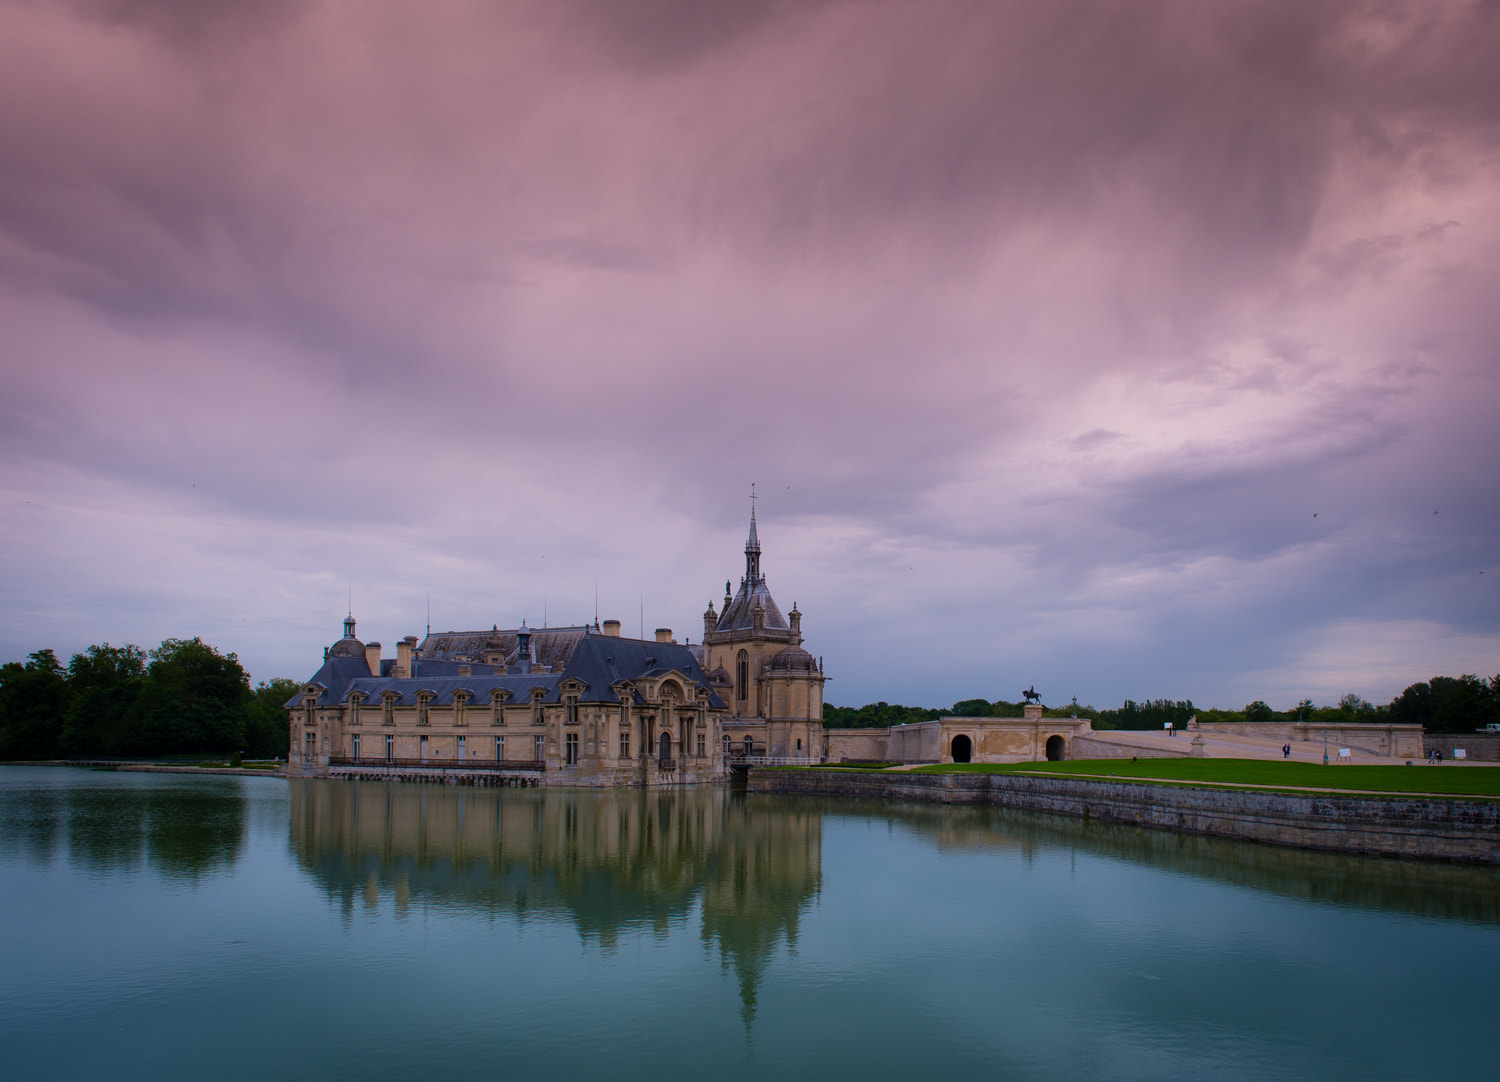 Photograph Chateau Chantilly by Tanya Rist on 500px